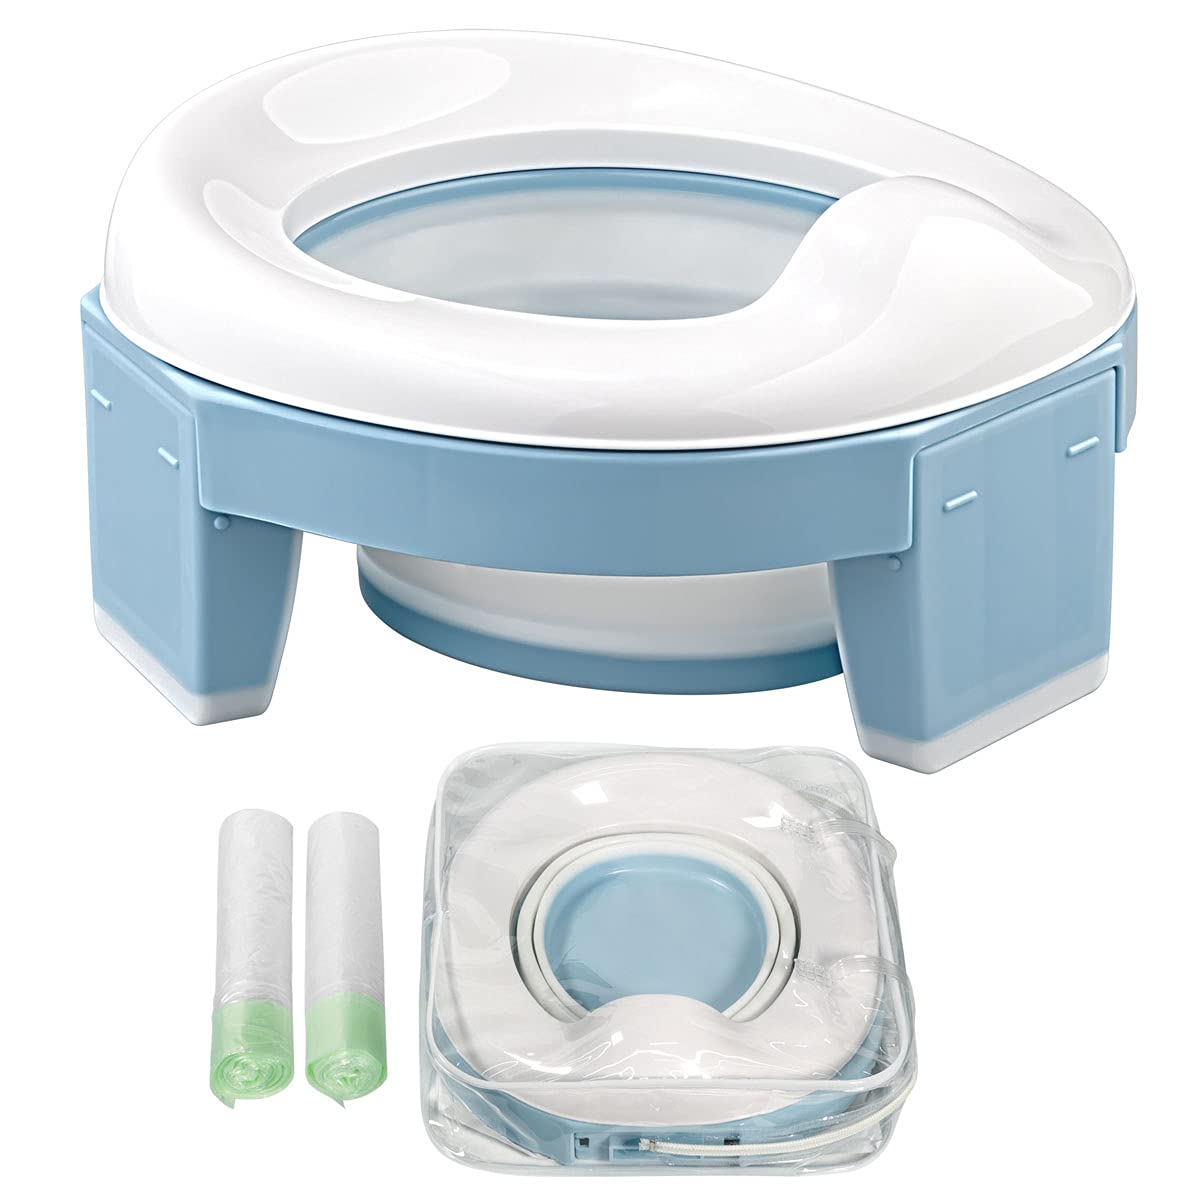 Portable Potty Selling and selling for Toddler Kids Max 54% OFF Seat Car T Foldable Travel